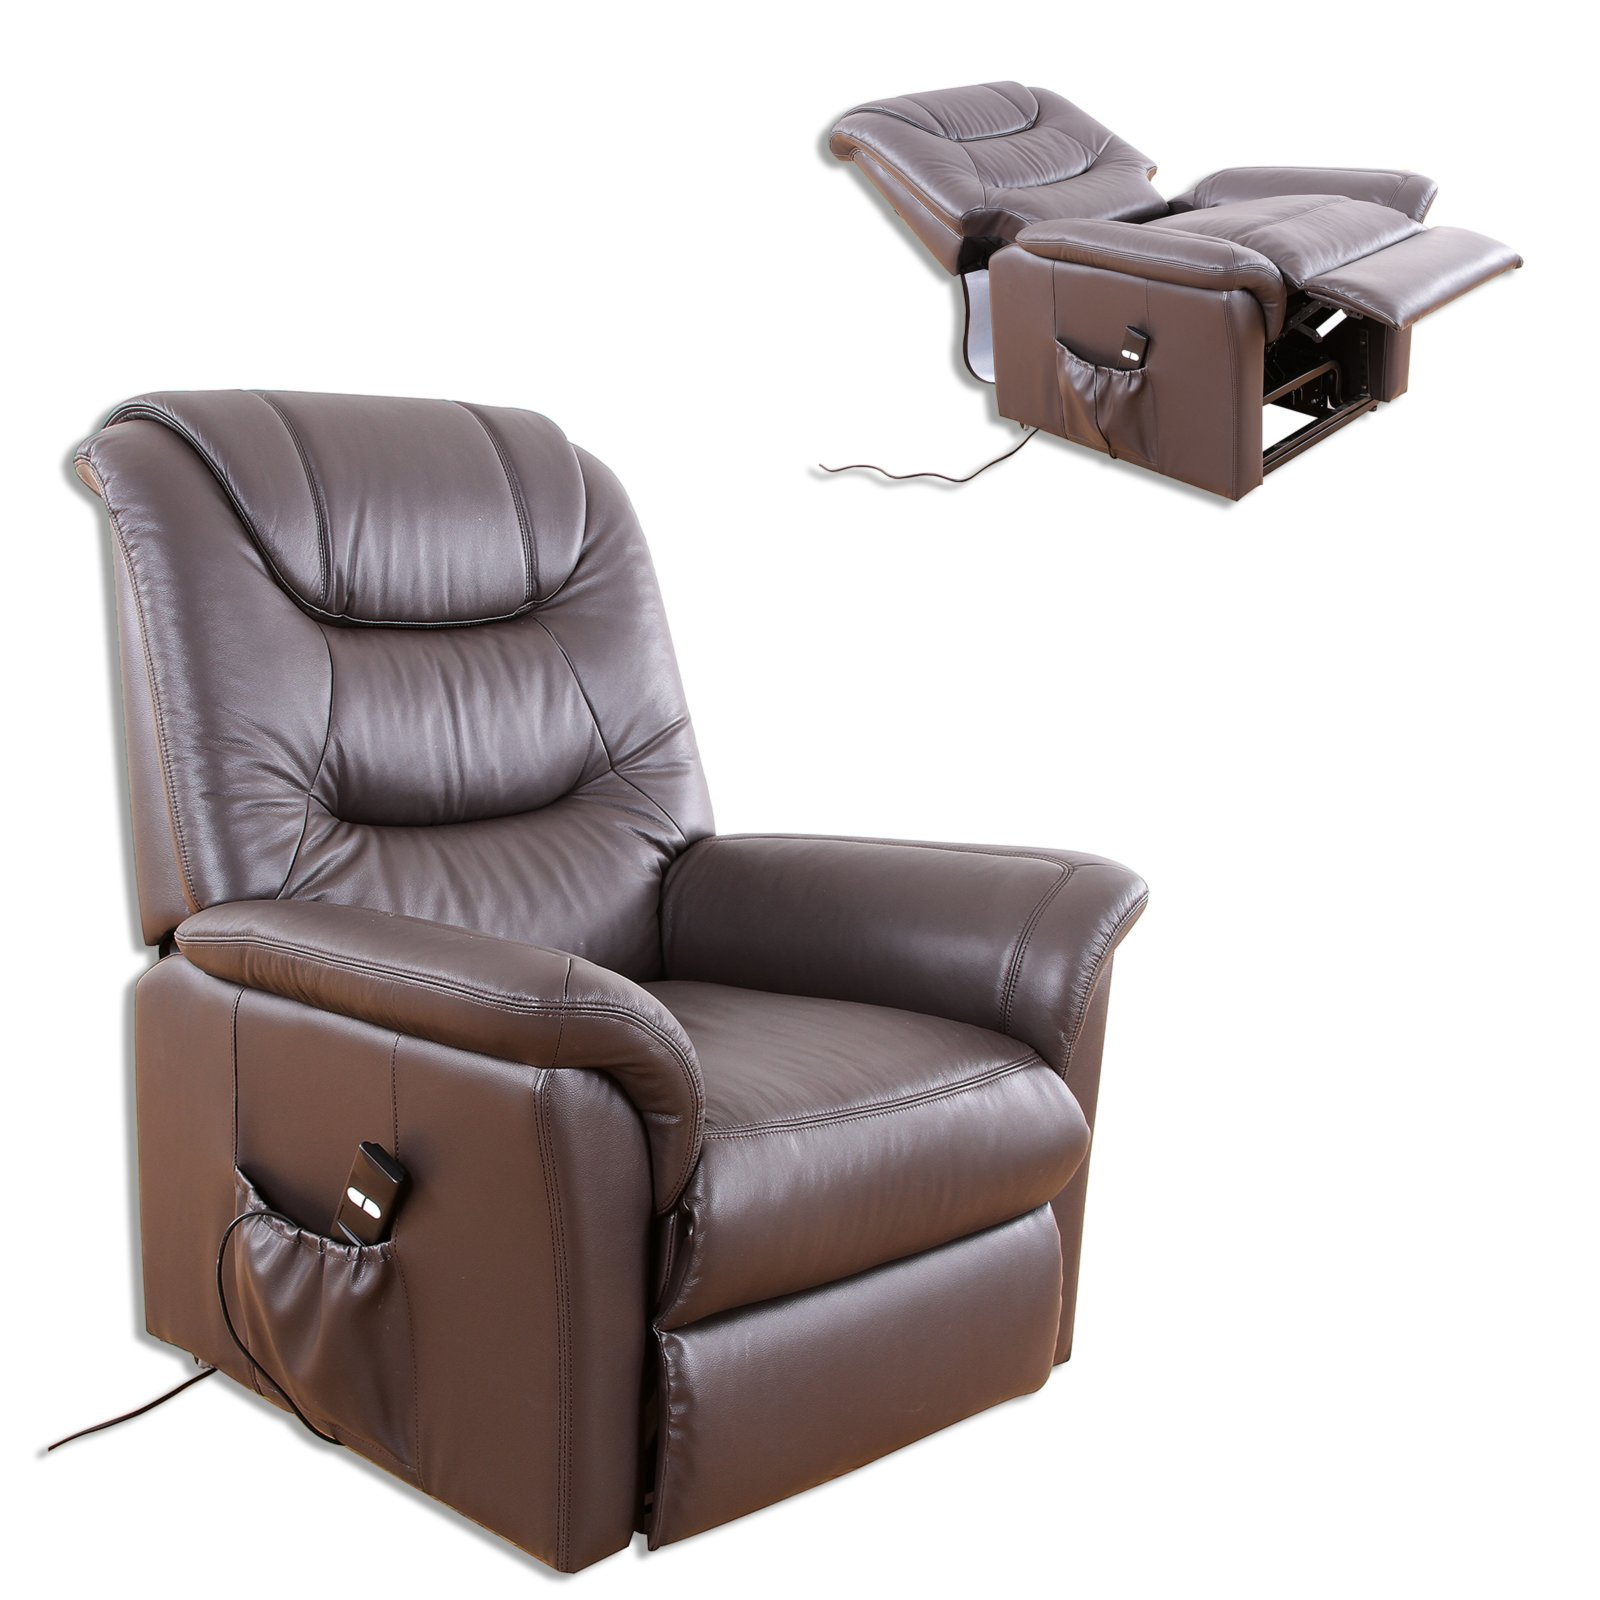 Tv-sessel Relaxsessel Tv Sessel Braun Leder Fernseh And Relaxsessel